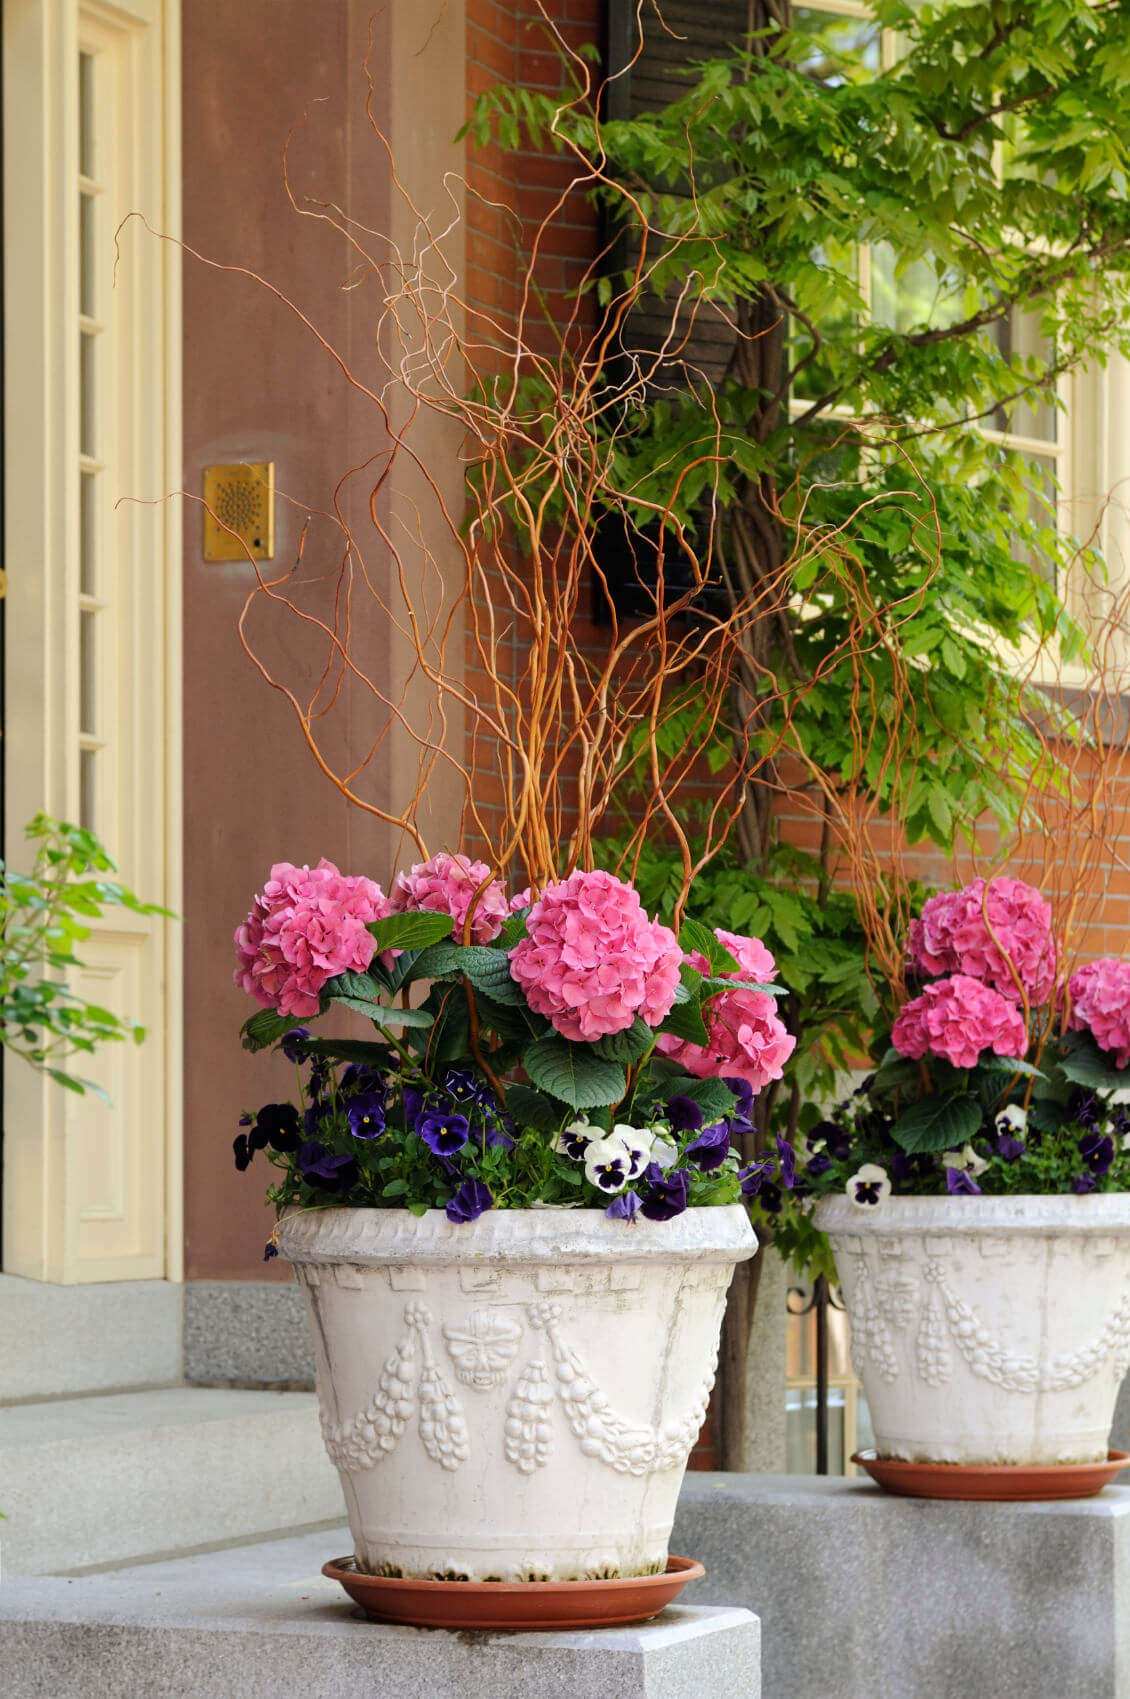 Give a royal feel to your ornate pottery arrangement by using pink  hydrangeas and arrange them